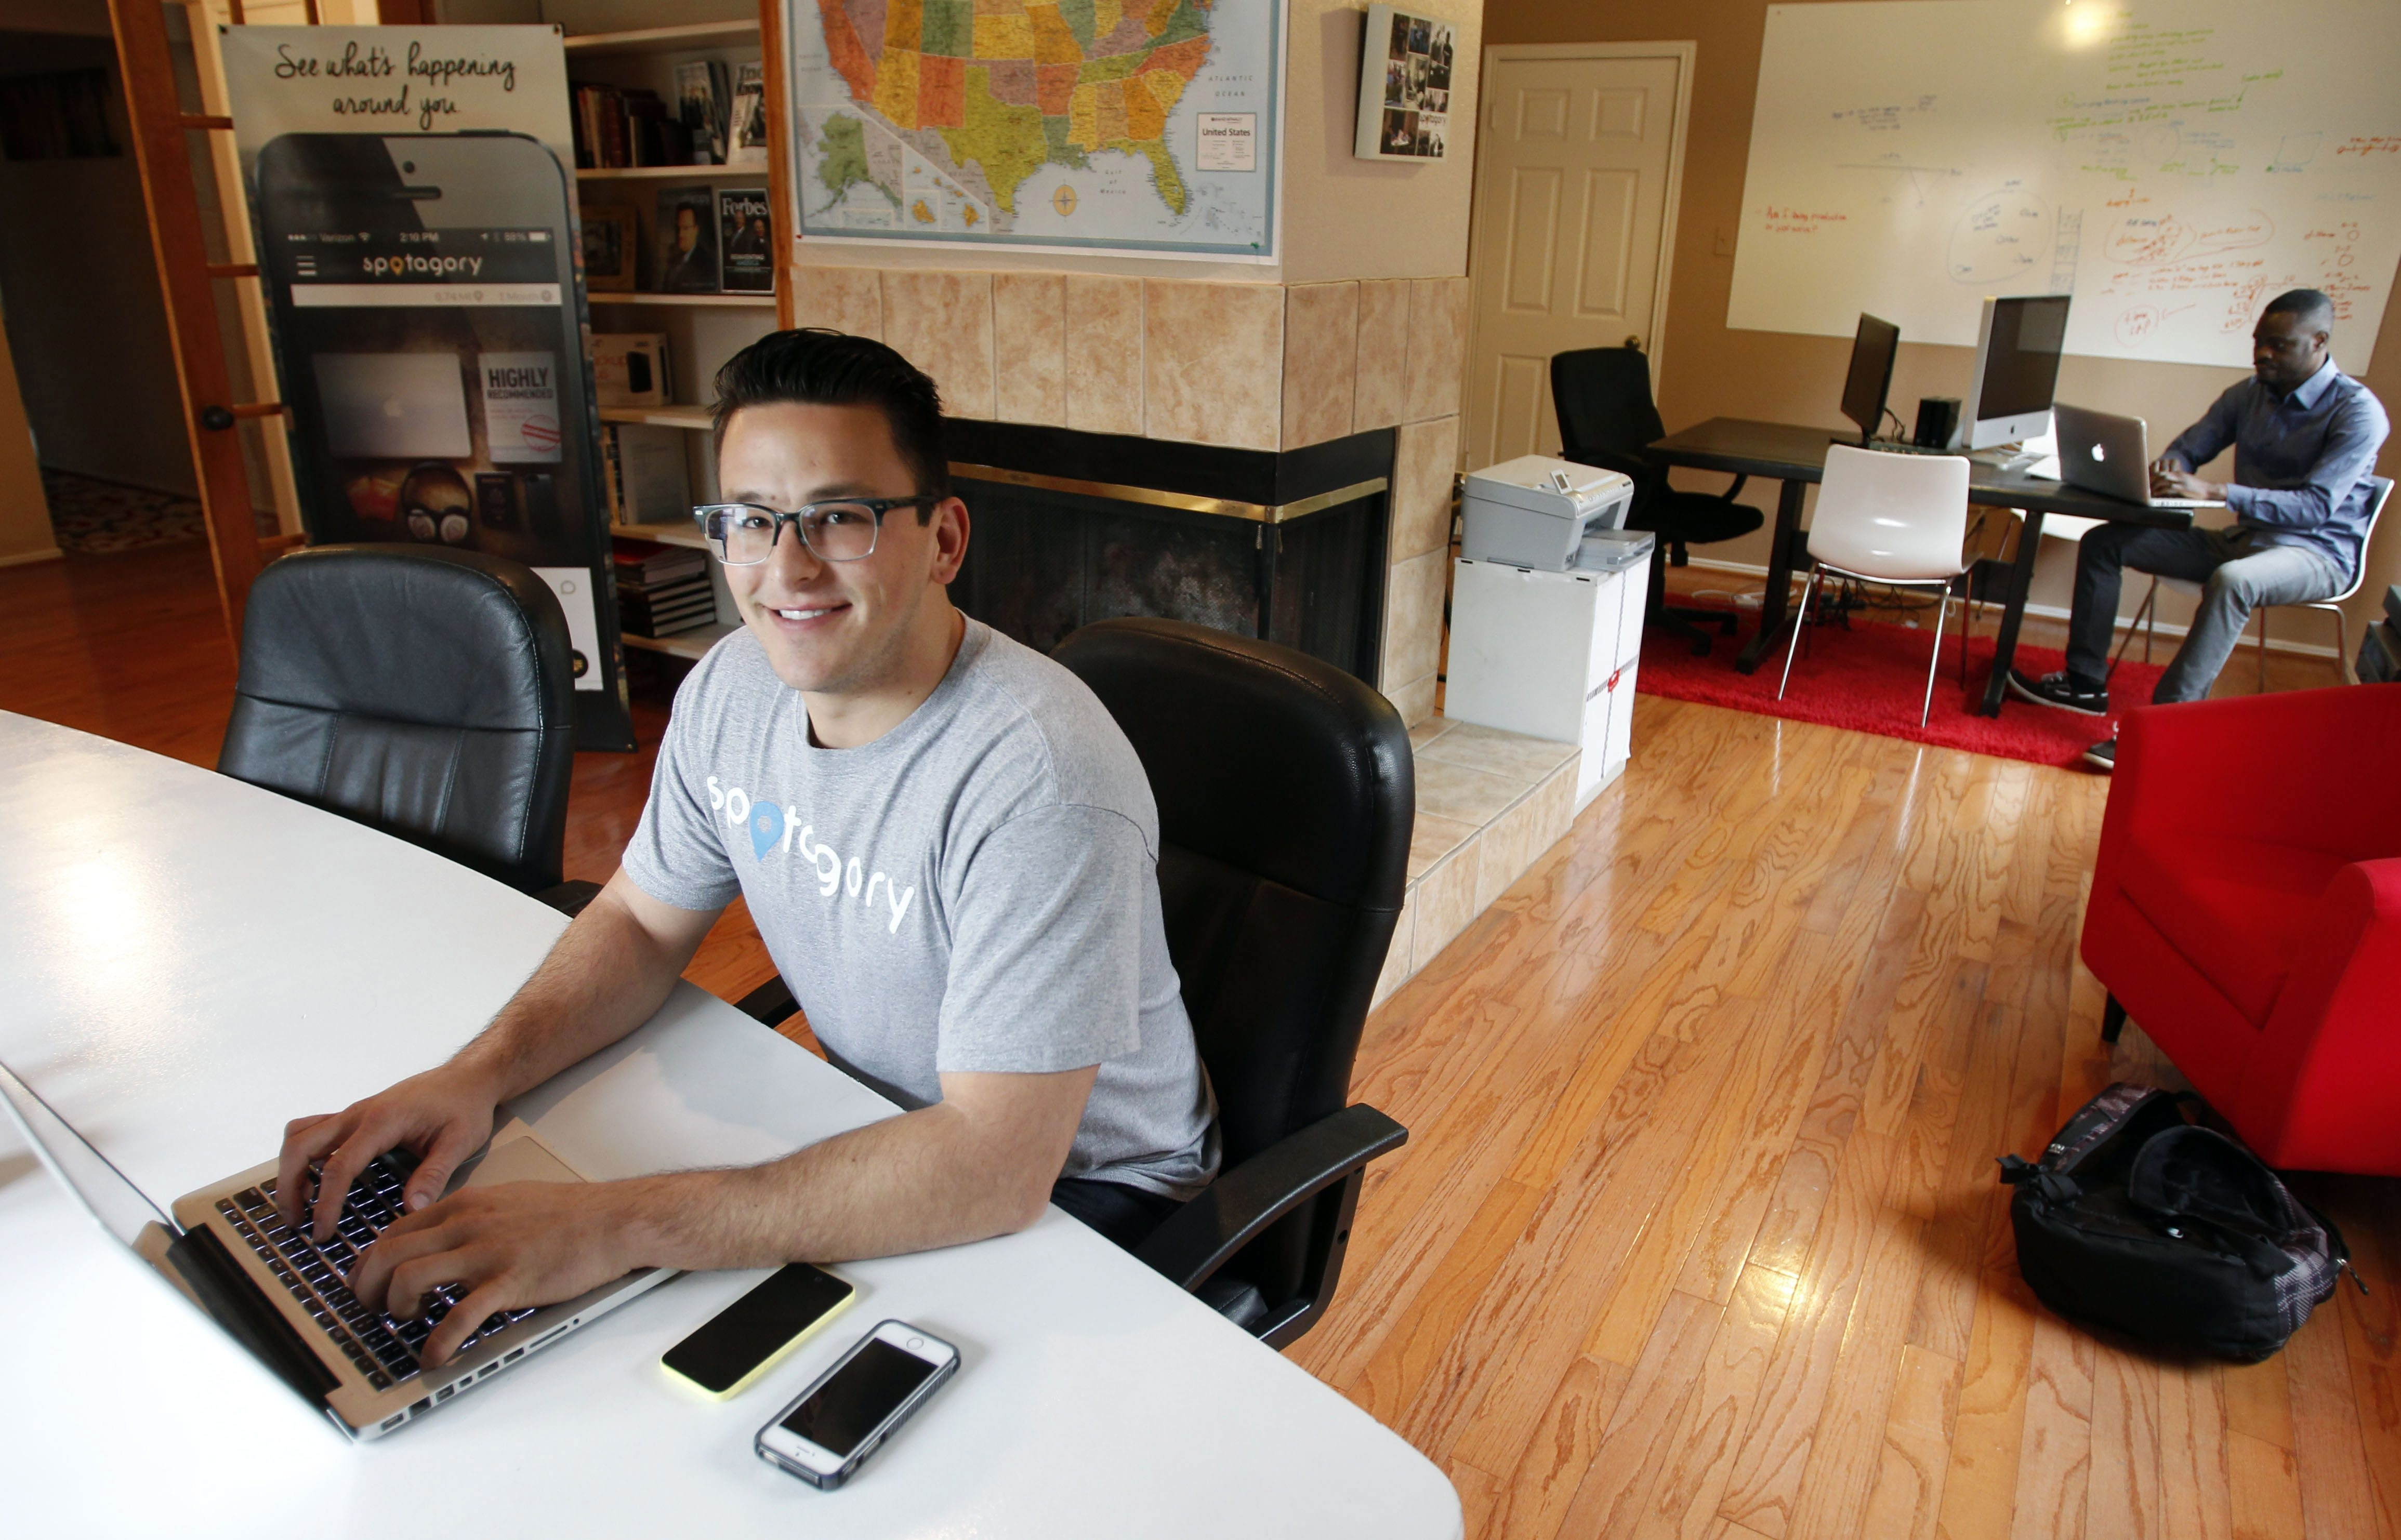 Kaleb Bryan, shown at home in Coppell, Texas, is the co-founder and CEO of Spotagory, a mobile photo-sharing app.